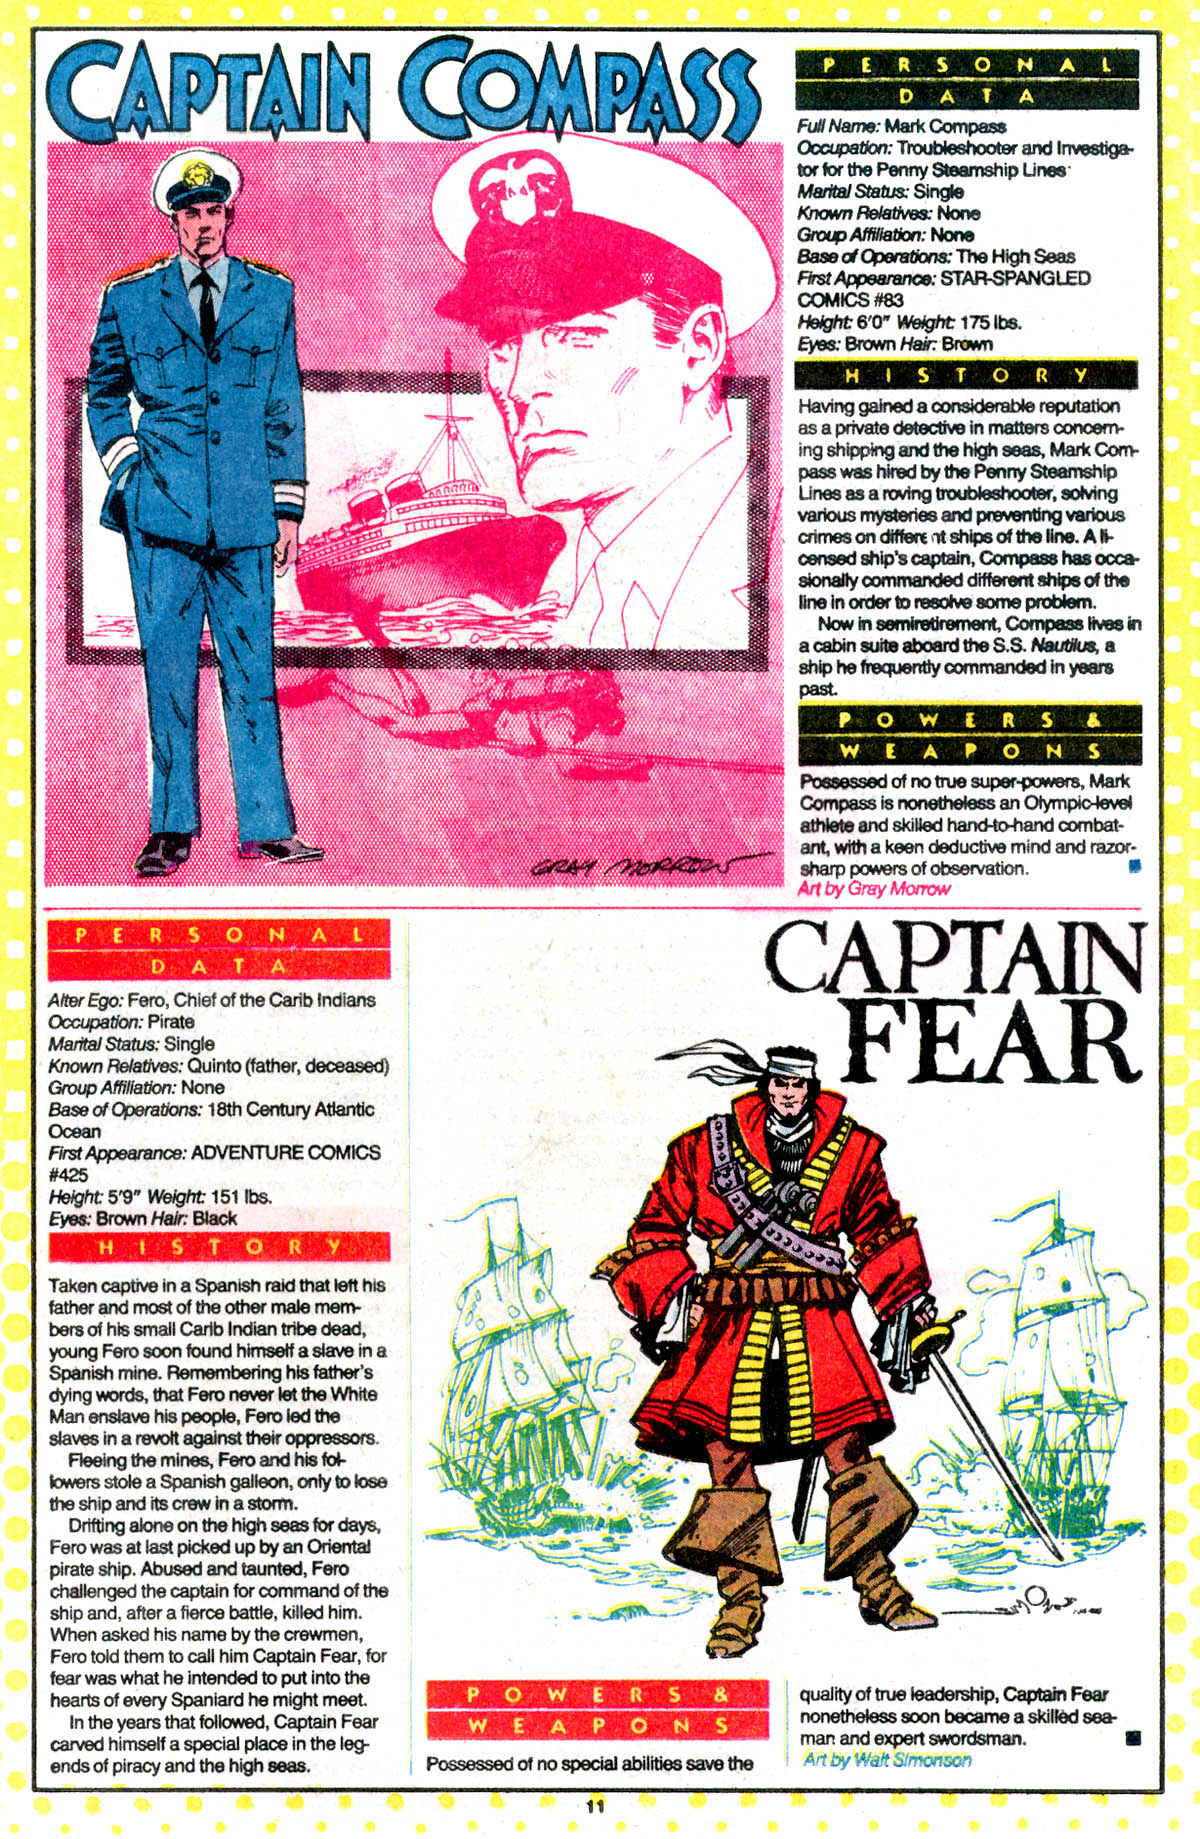 Who's Who: The Definitive Directory of the DC Universe #4 (1985) - Captain Fear drawn by Walt Simonson